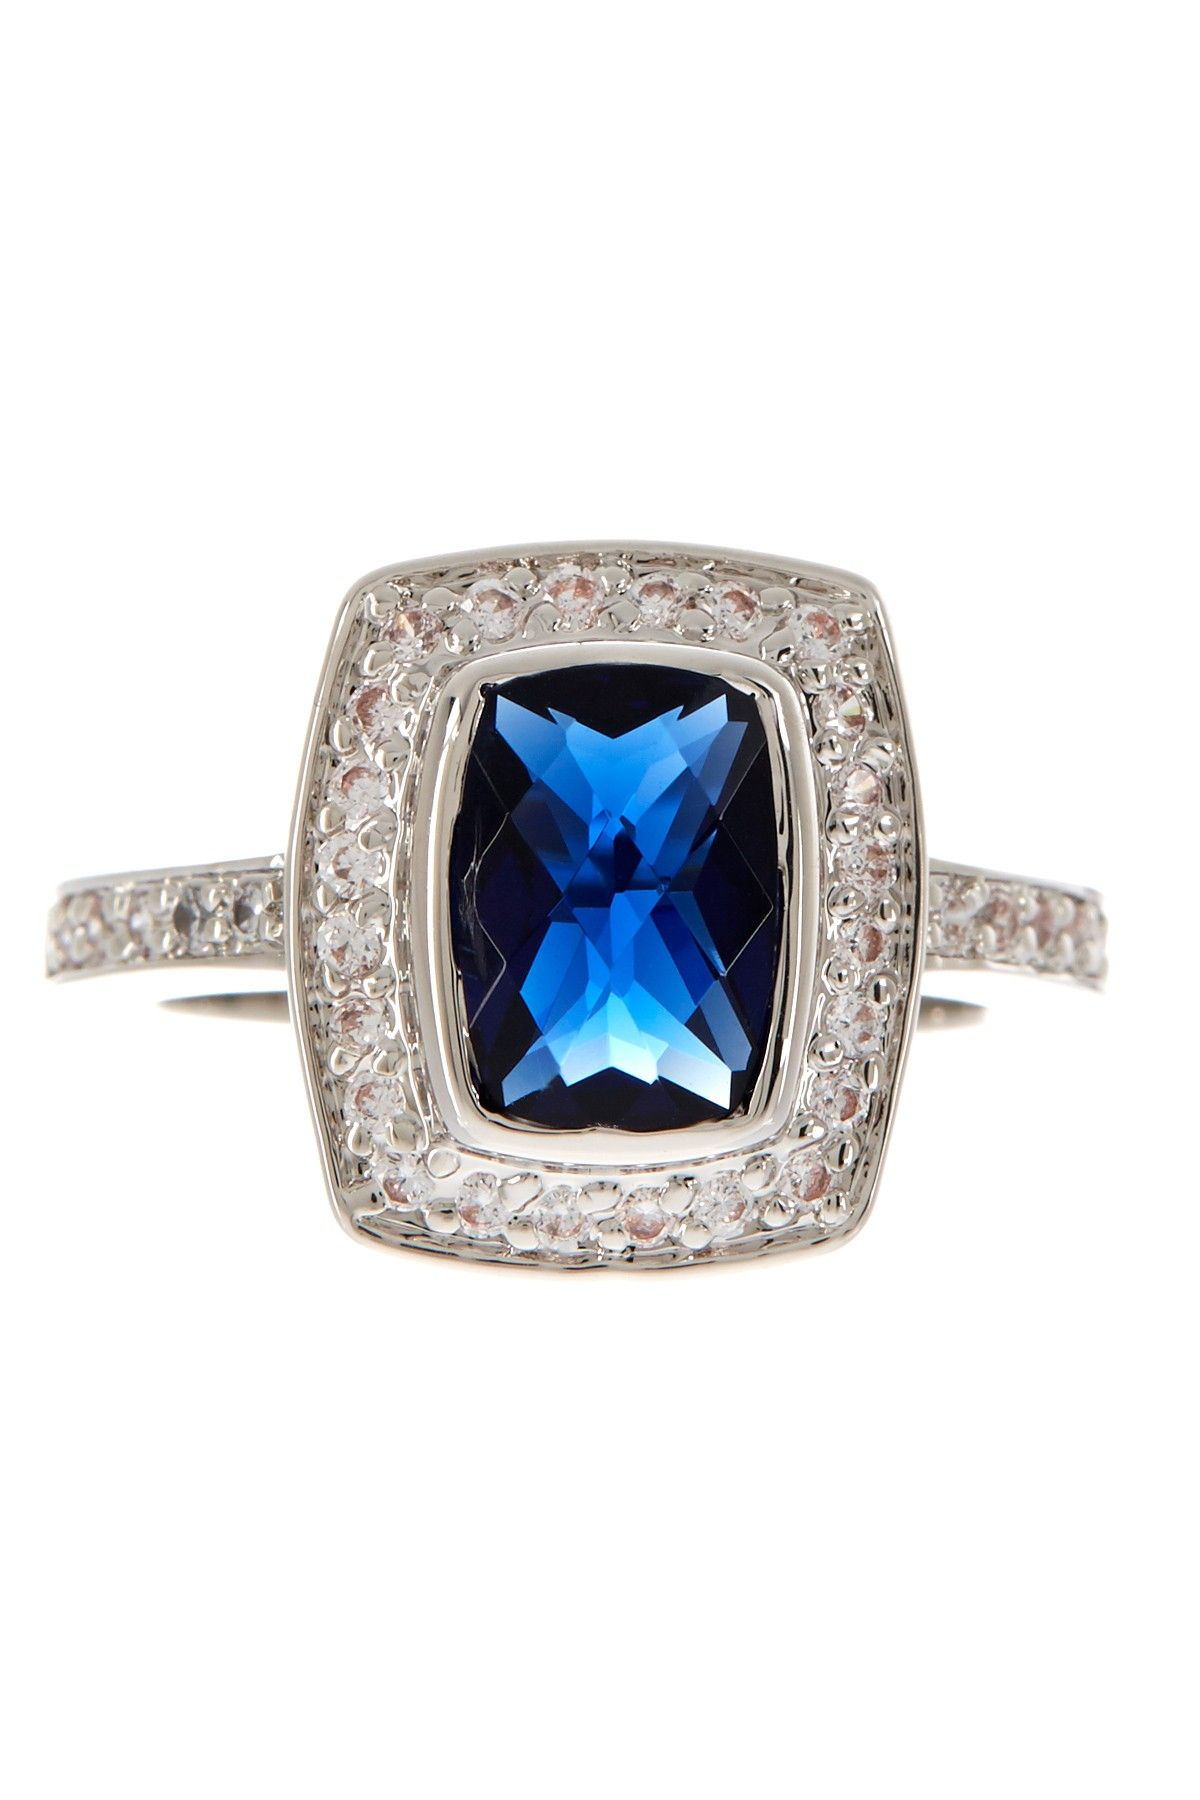 mikolay antique vintage oval cocktail sapphire diamond style blue desires and by products ring